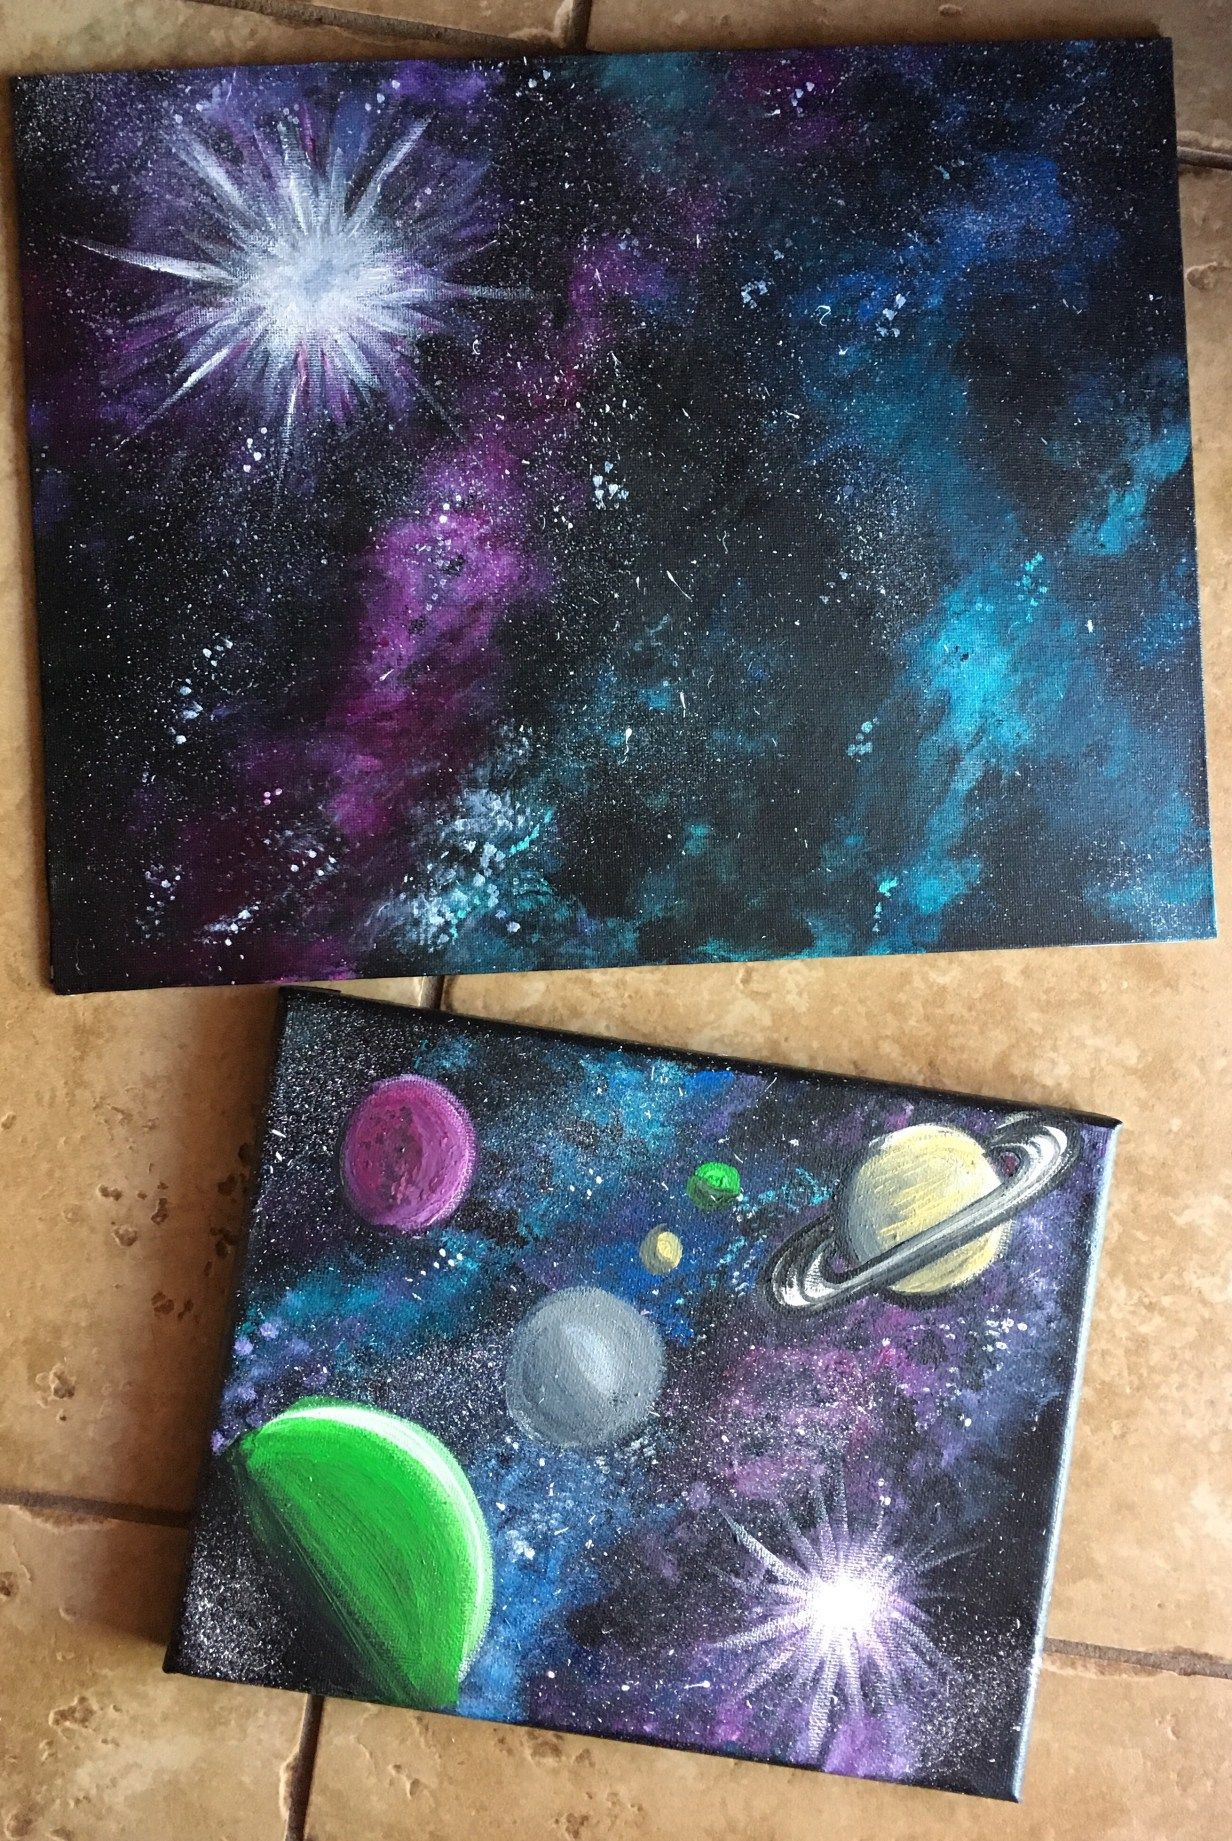 Galaxy Painting Step By Step Acrylic Painting Tutorial Galaxy Painting Acrylic Planet Painting Galaxy Drawings